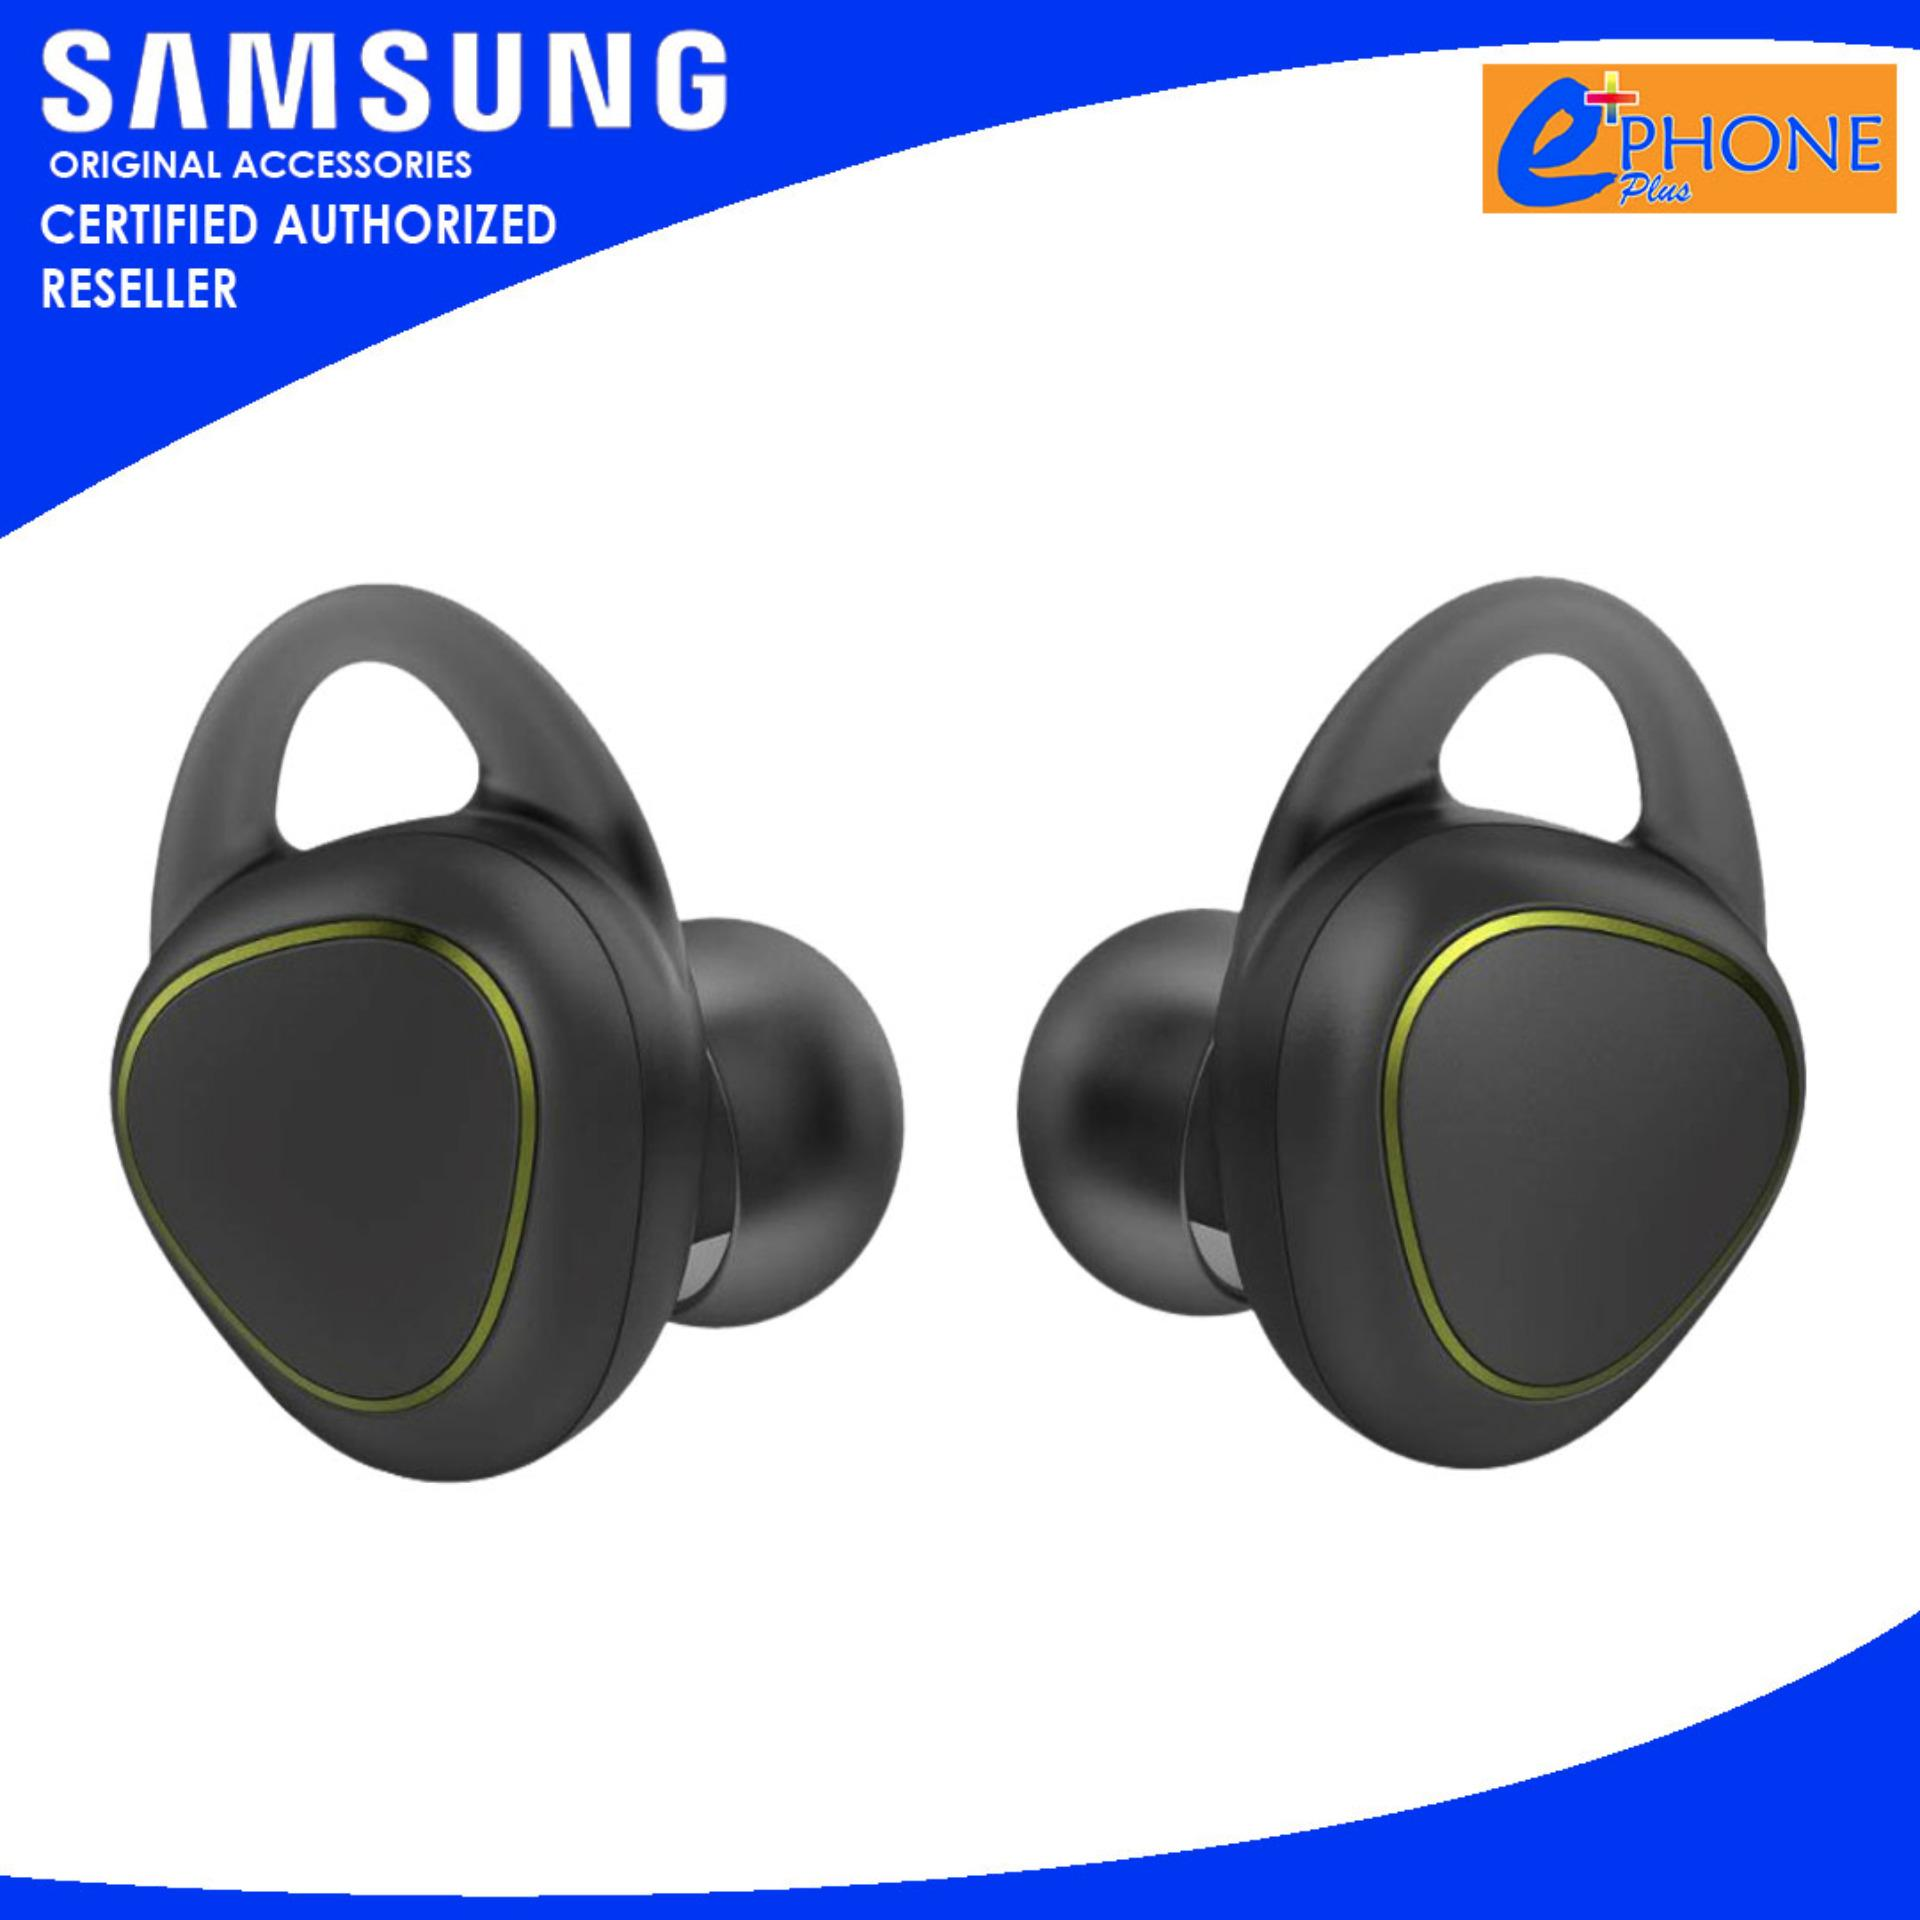 Samsung Philippines Samsung Wireless Earbuds For Sale Prices